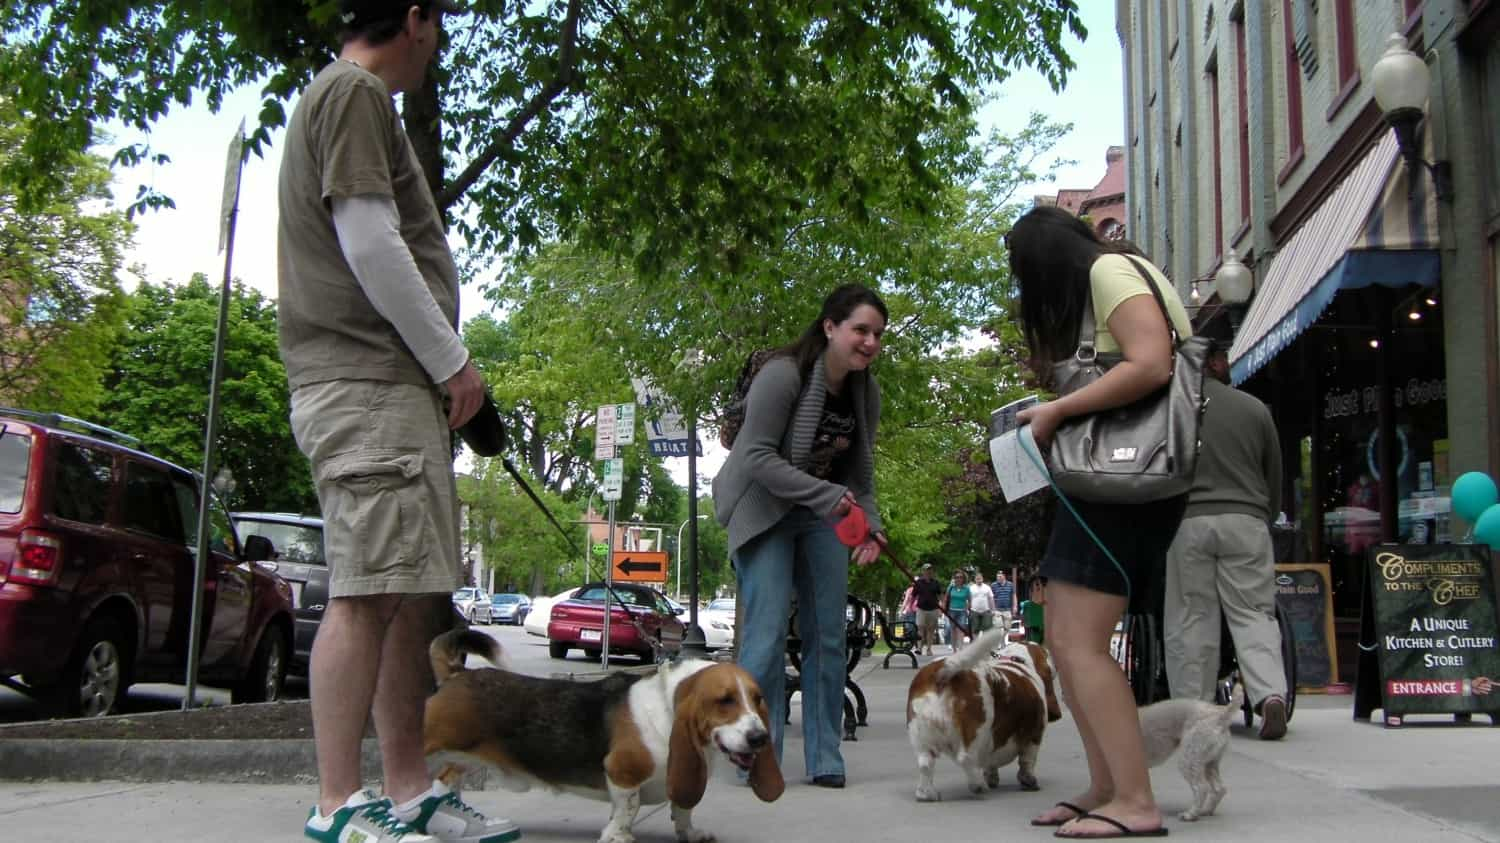 Saratoga Springs for Dog-Friendly Businesses